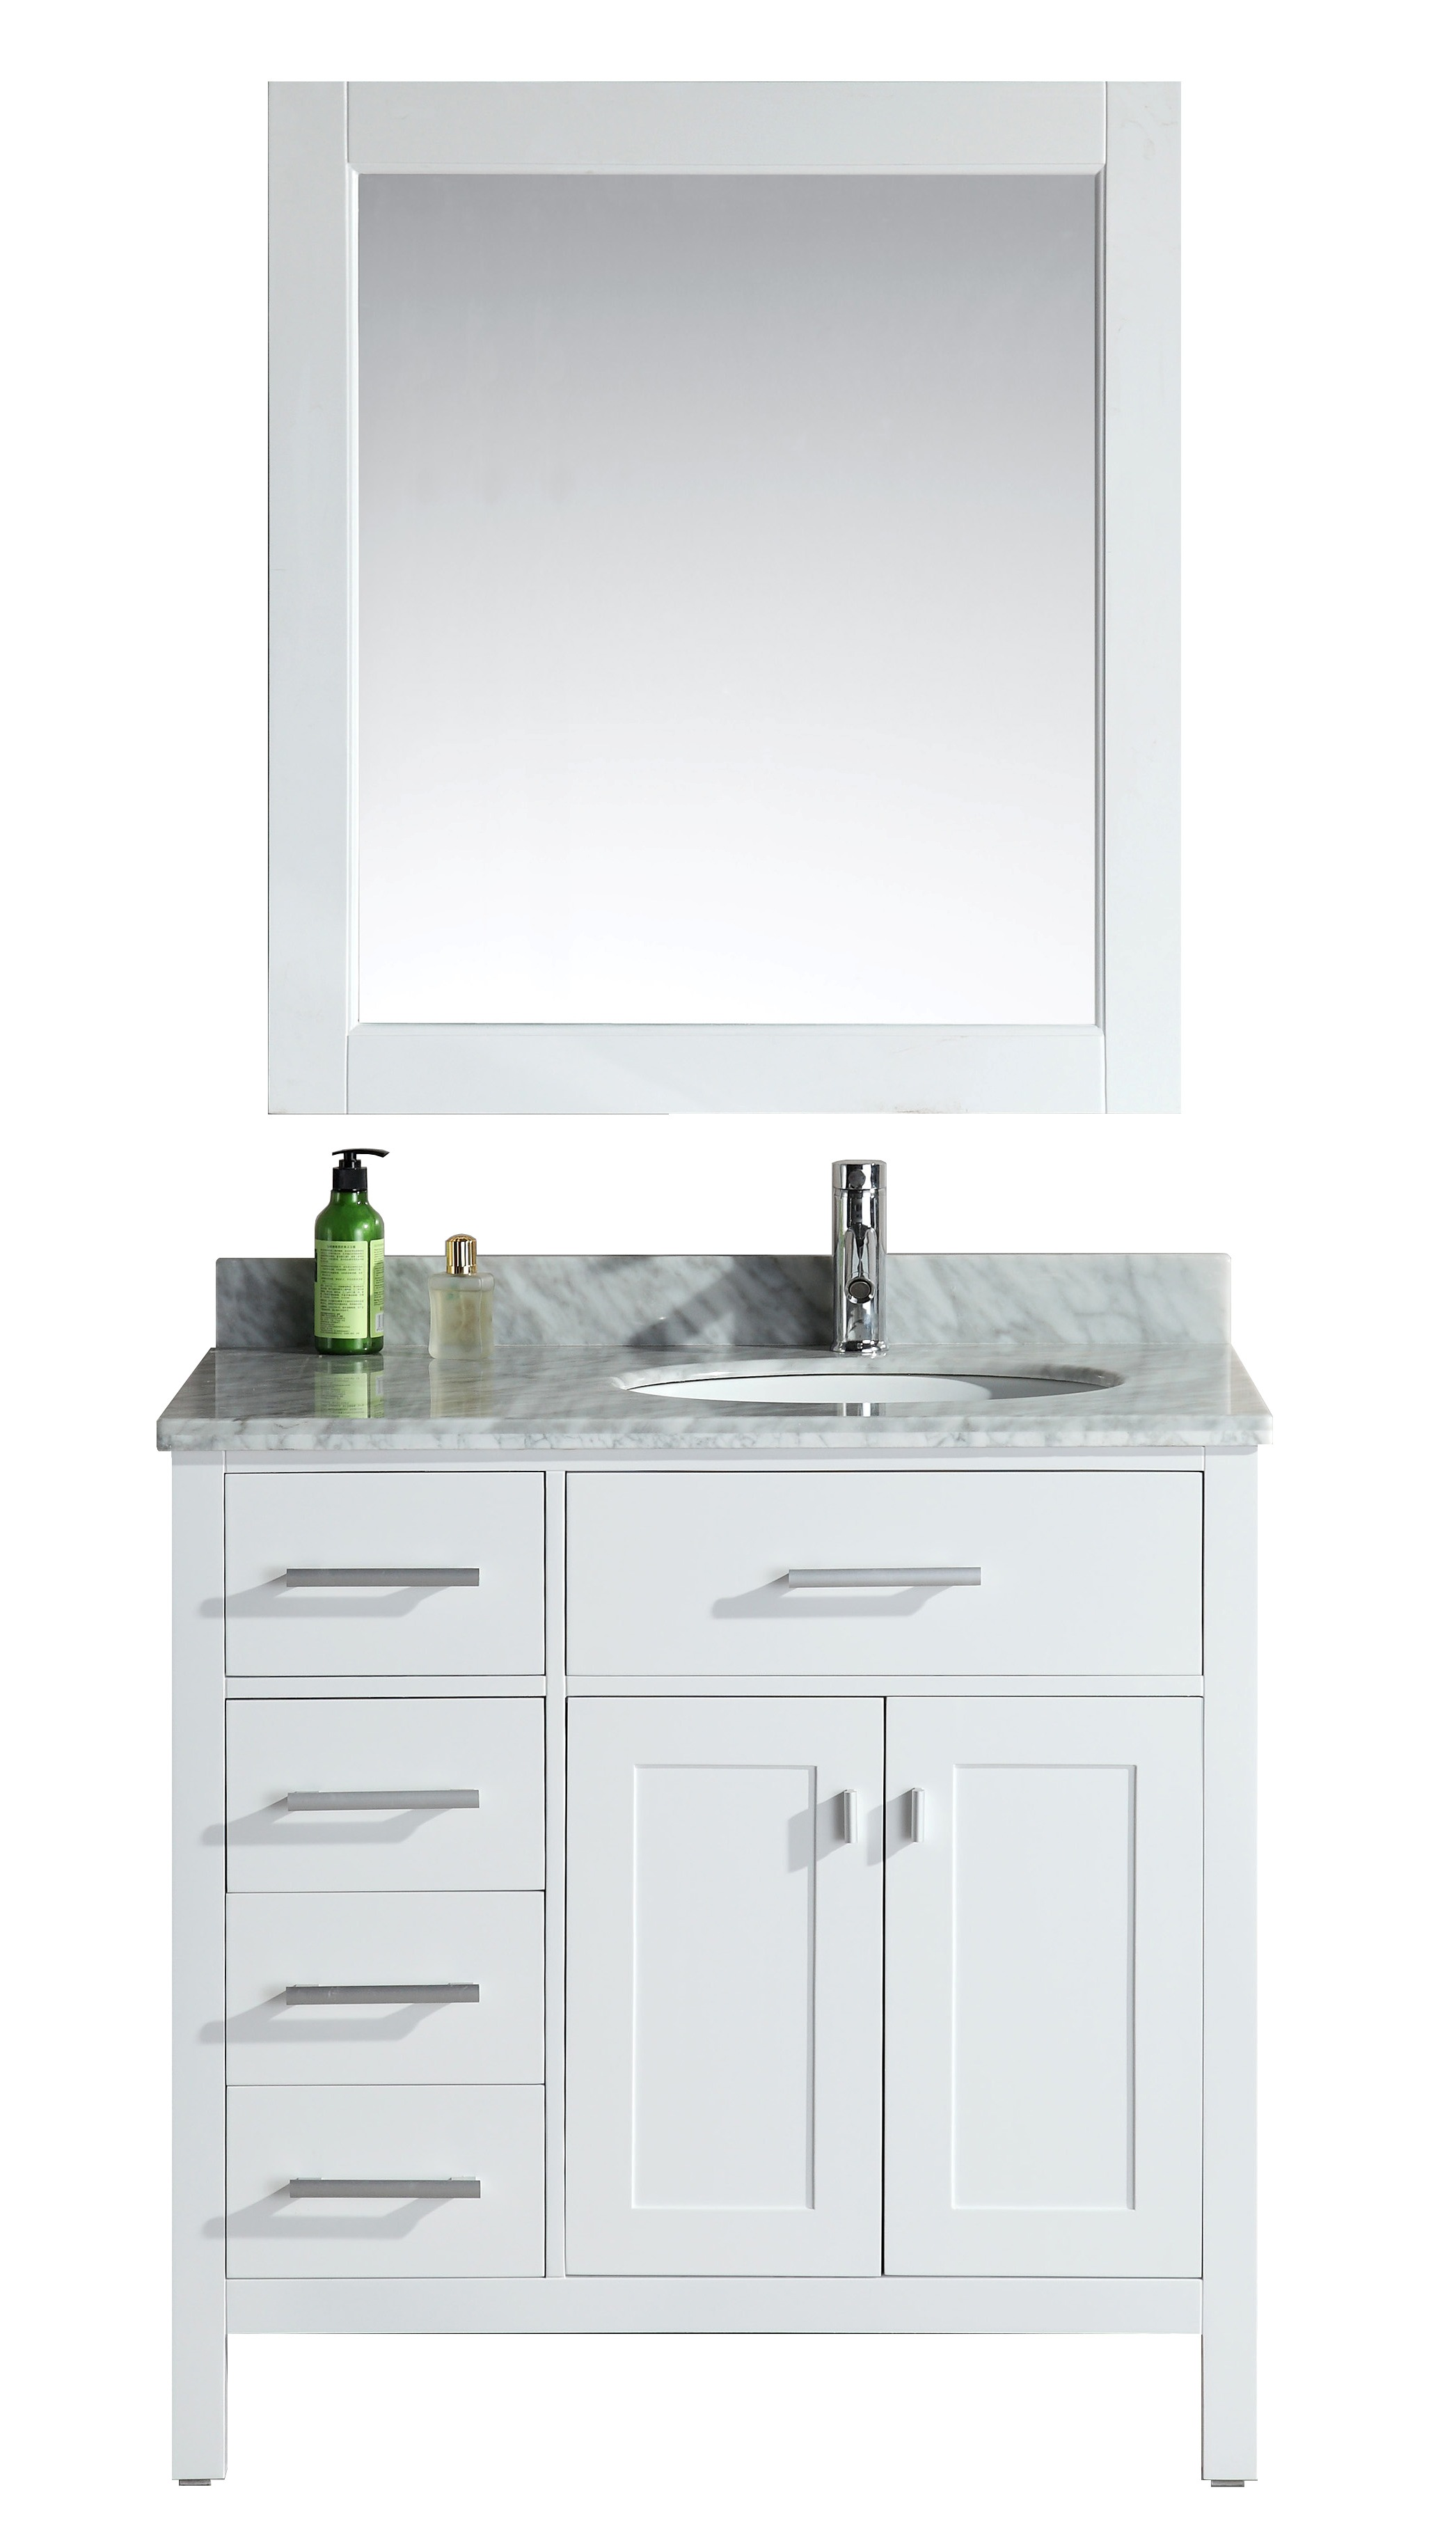 design element london 36 single sink bathroom vanity set in white with drawers on the left